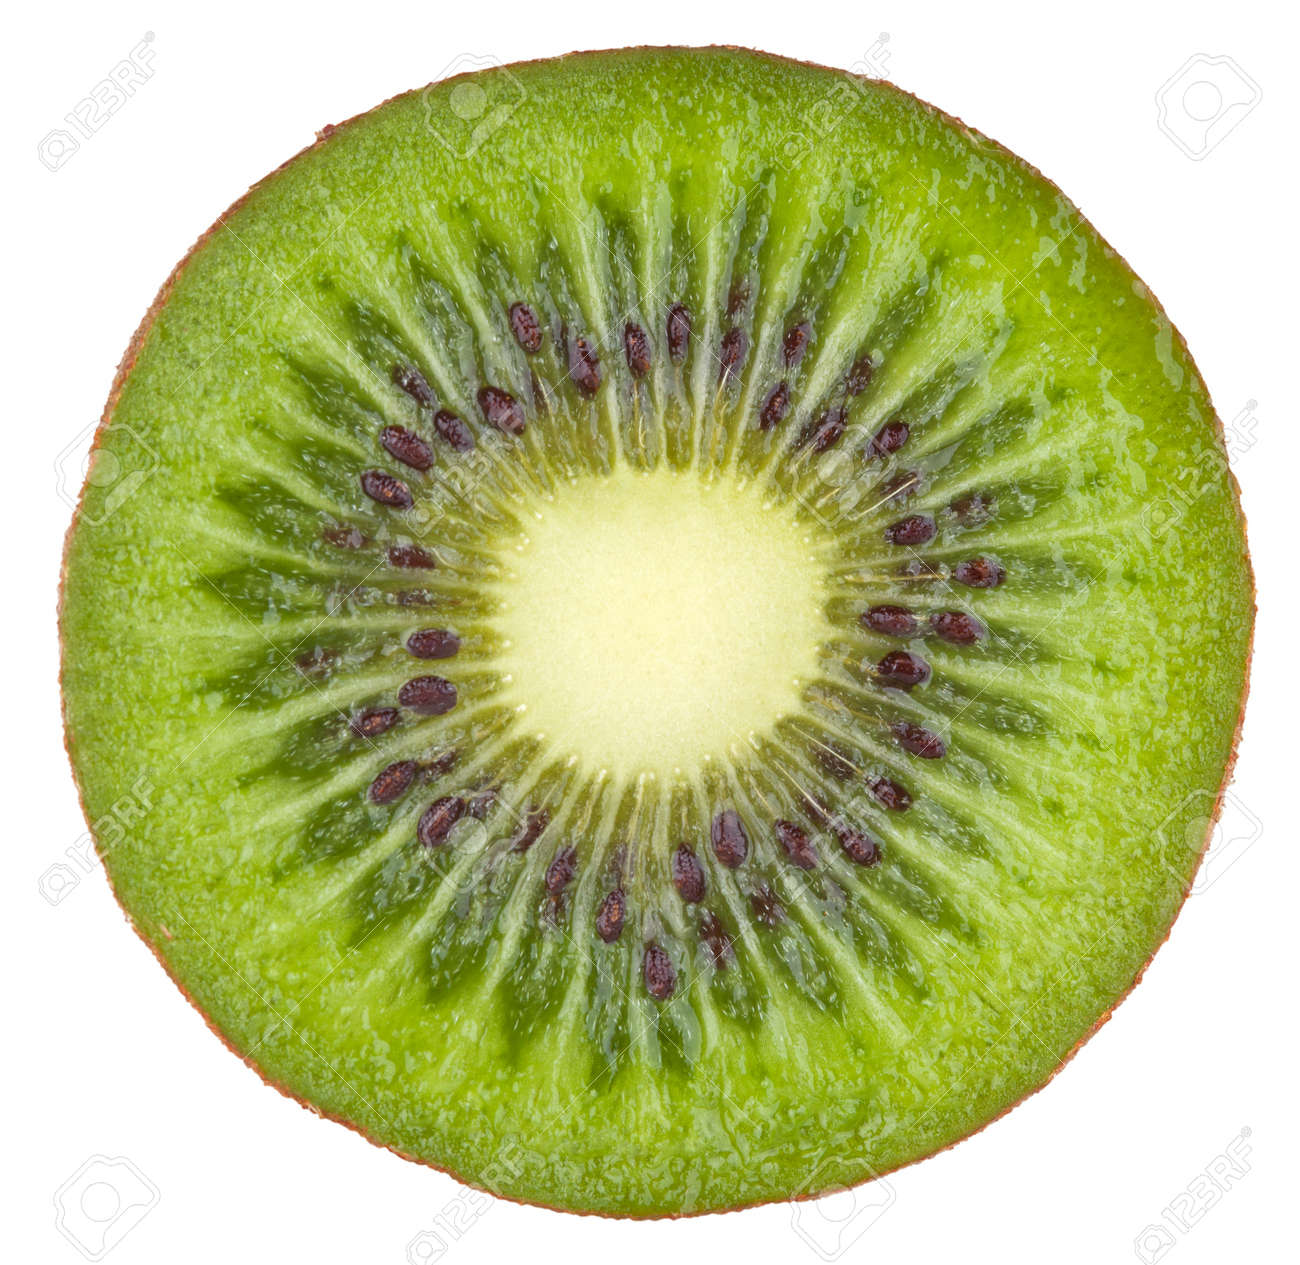 Kiwi isolated on white background with clipping path Stock Photo - 15064202